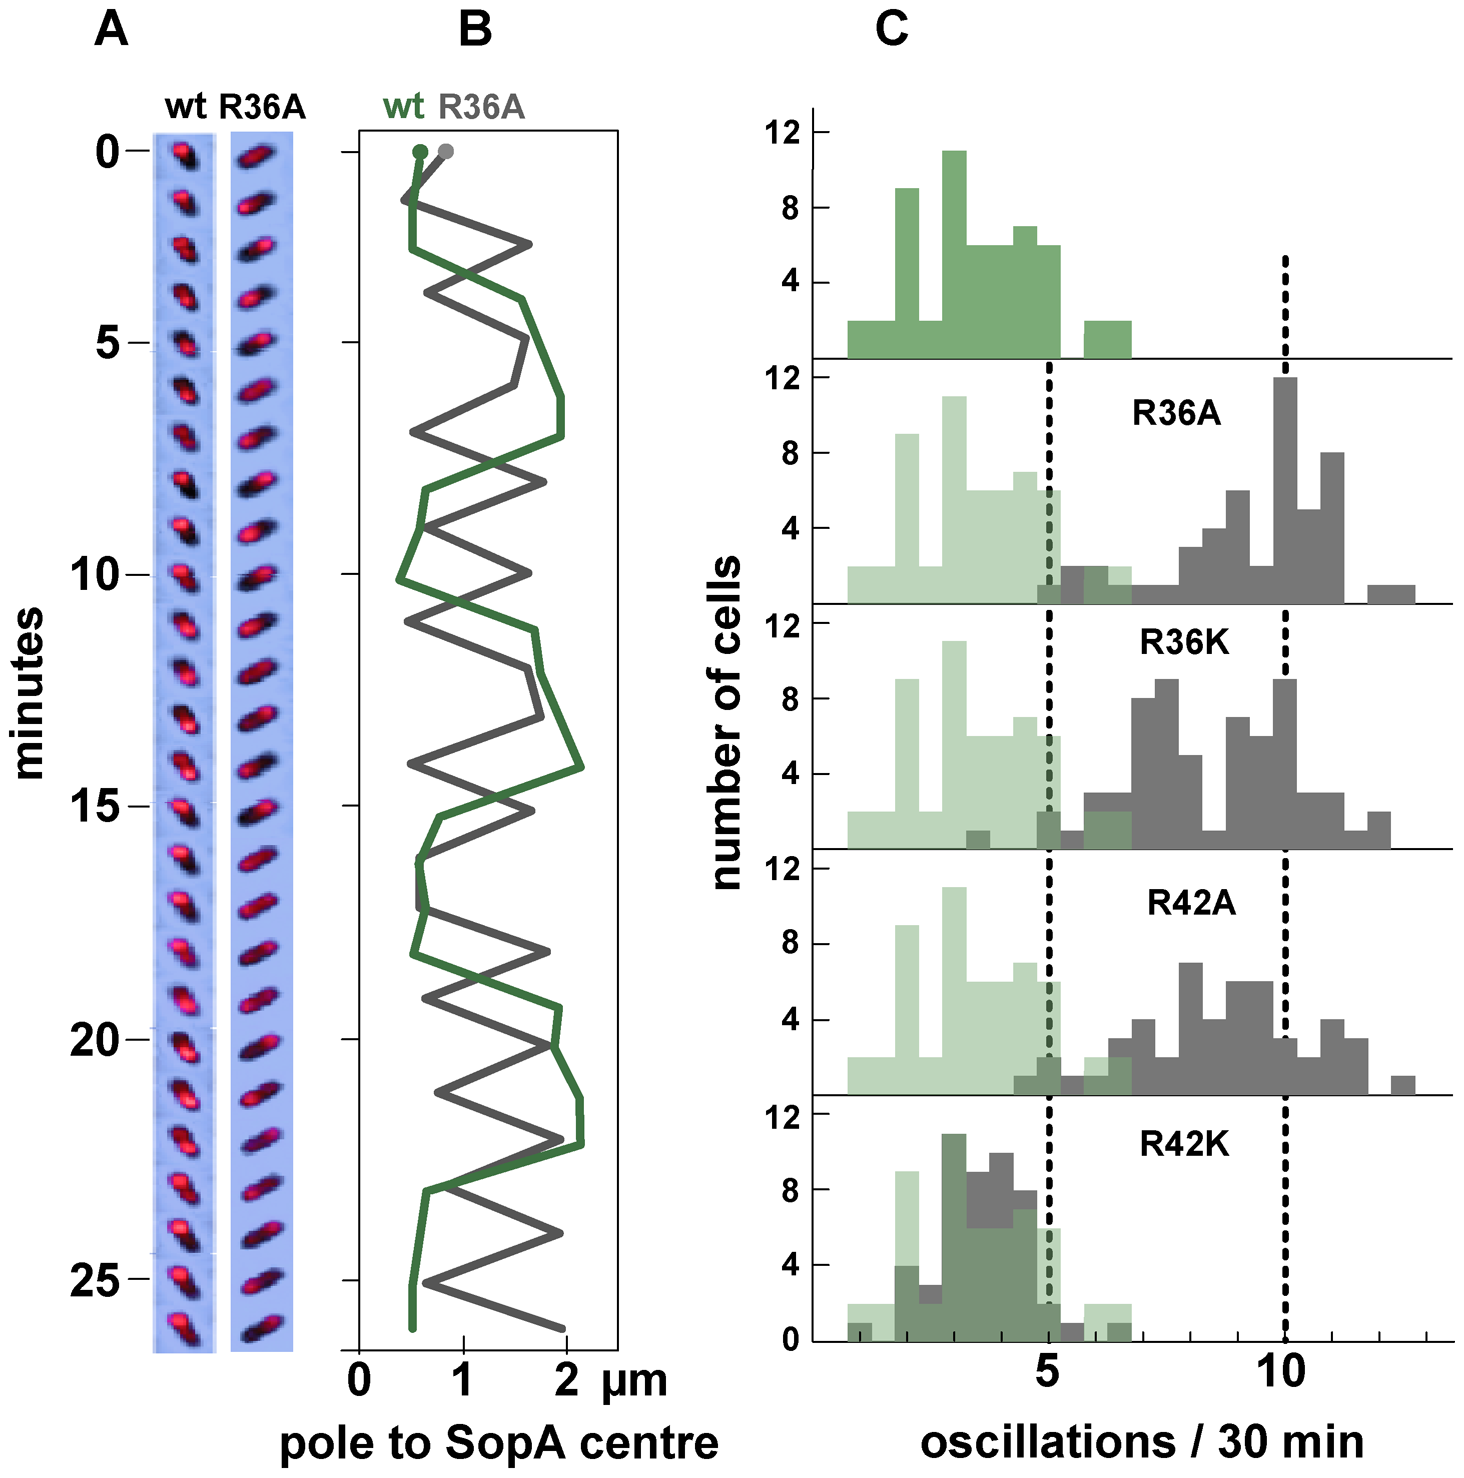 Effect of R36 and R42 mutations on SopA movement.